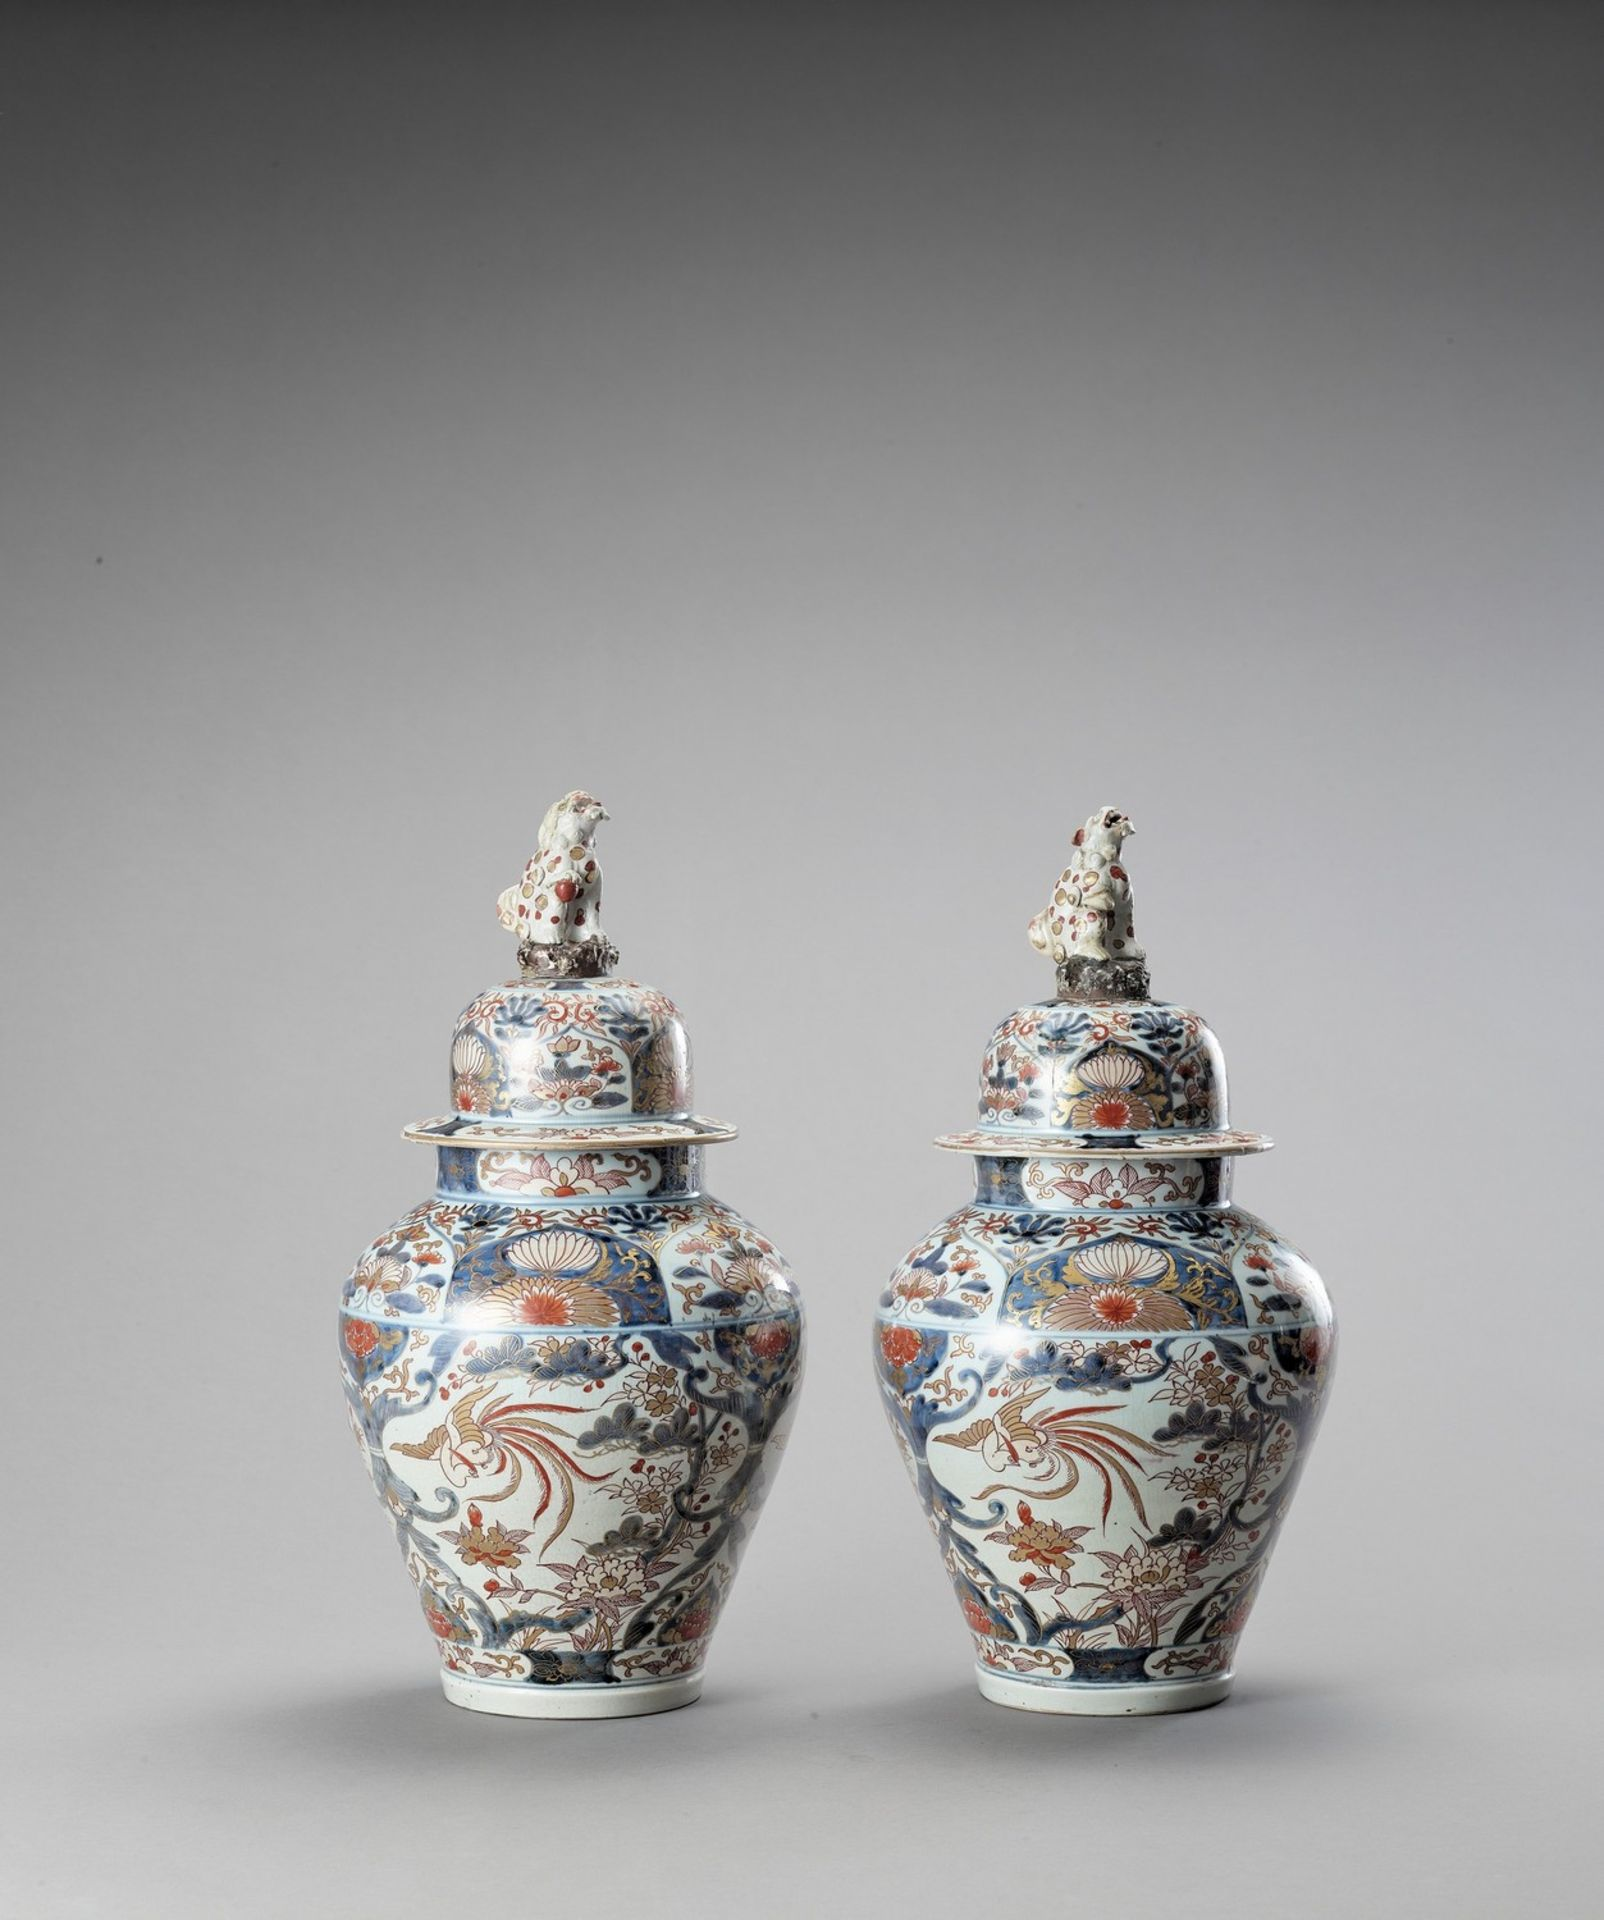 A LARGE PAIR OF IMARI PORCELAIN VASES AND COVERS - Image 3 of 6